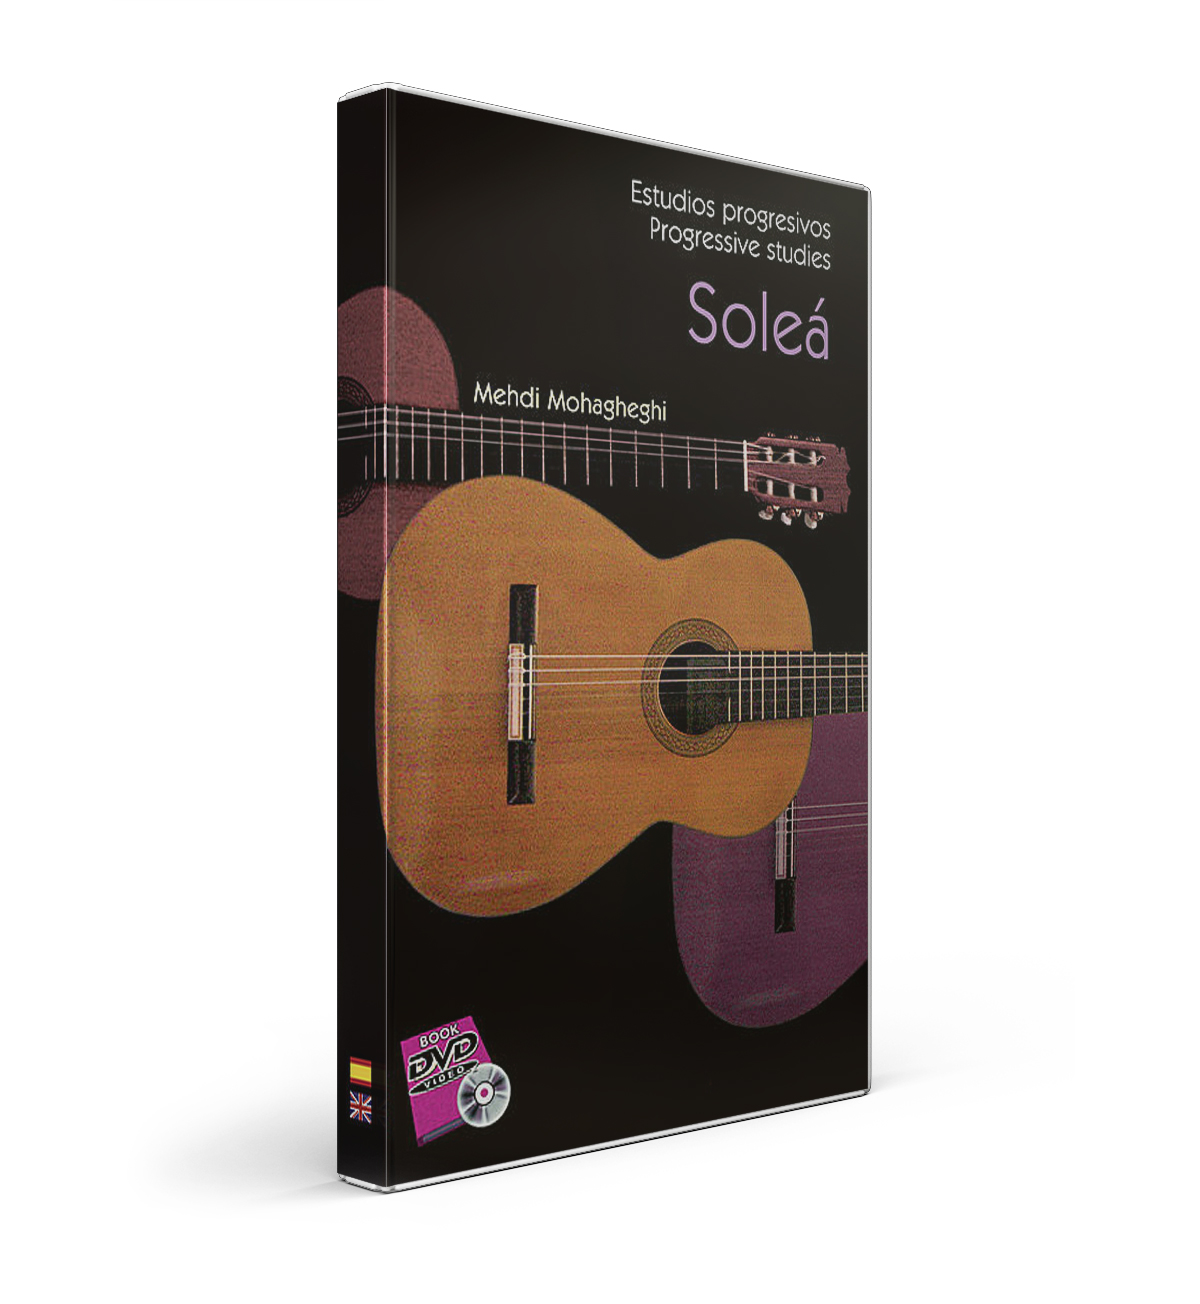 43 Soleá flamenco guitar studies DVD Book